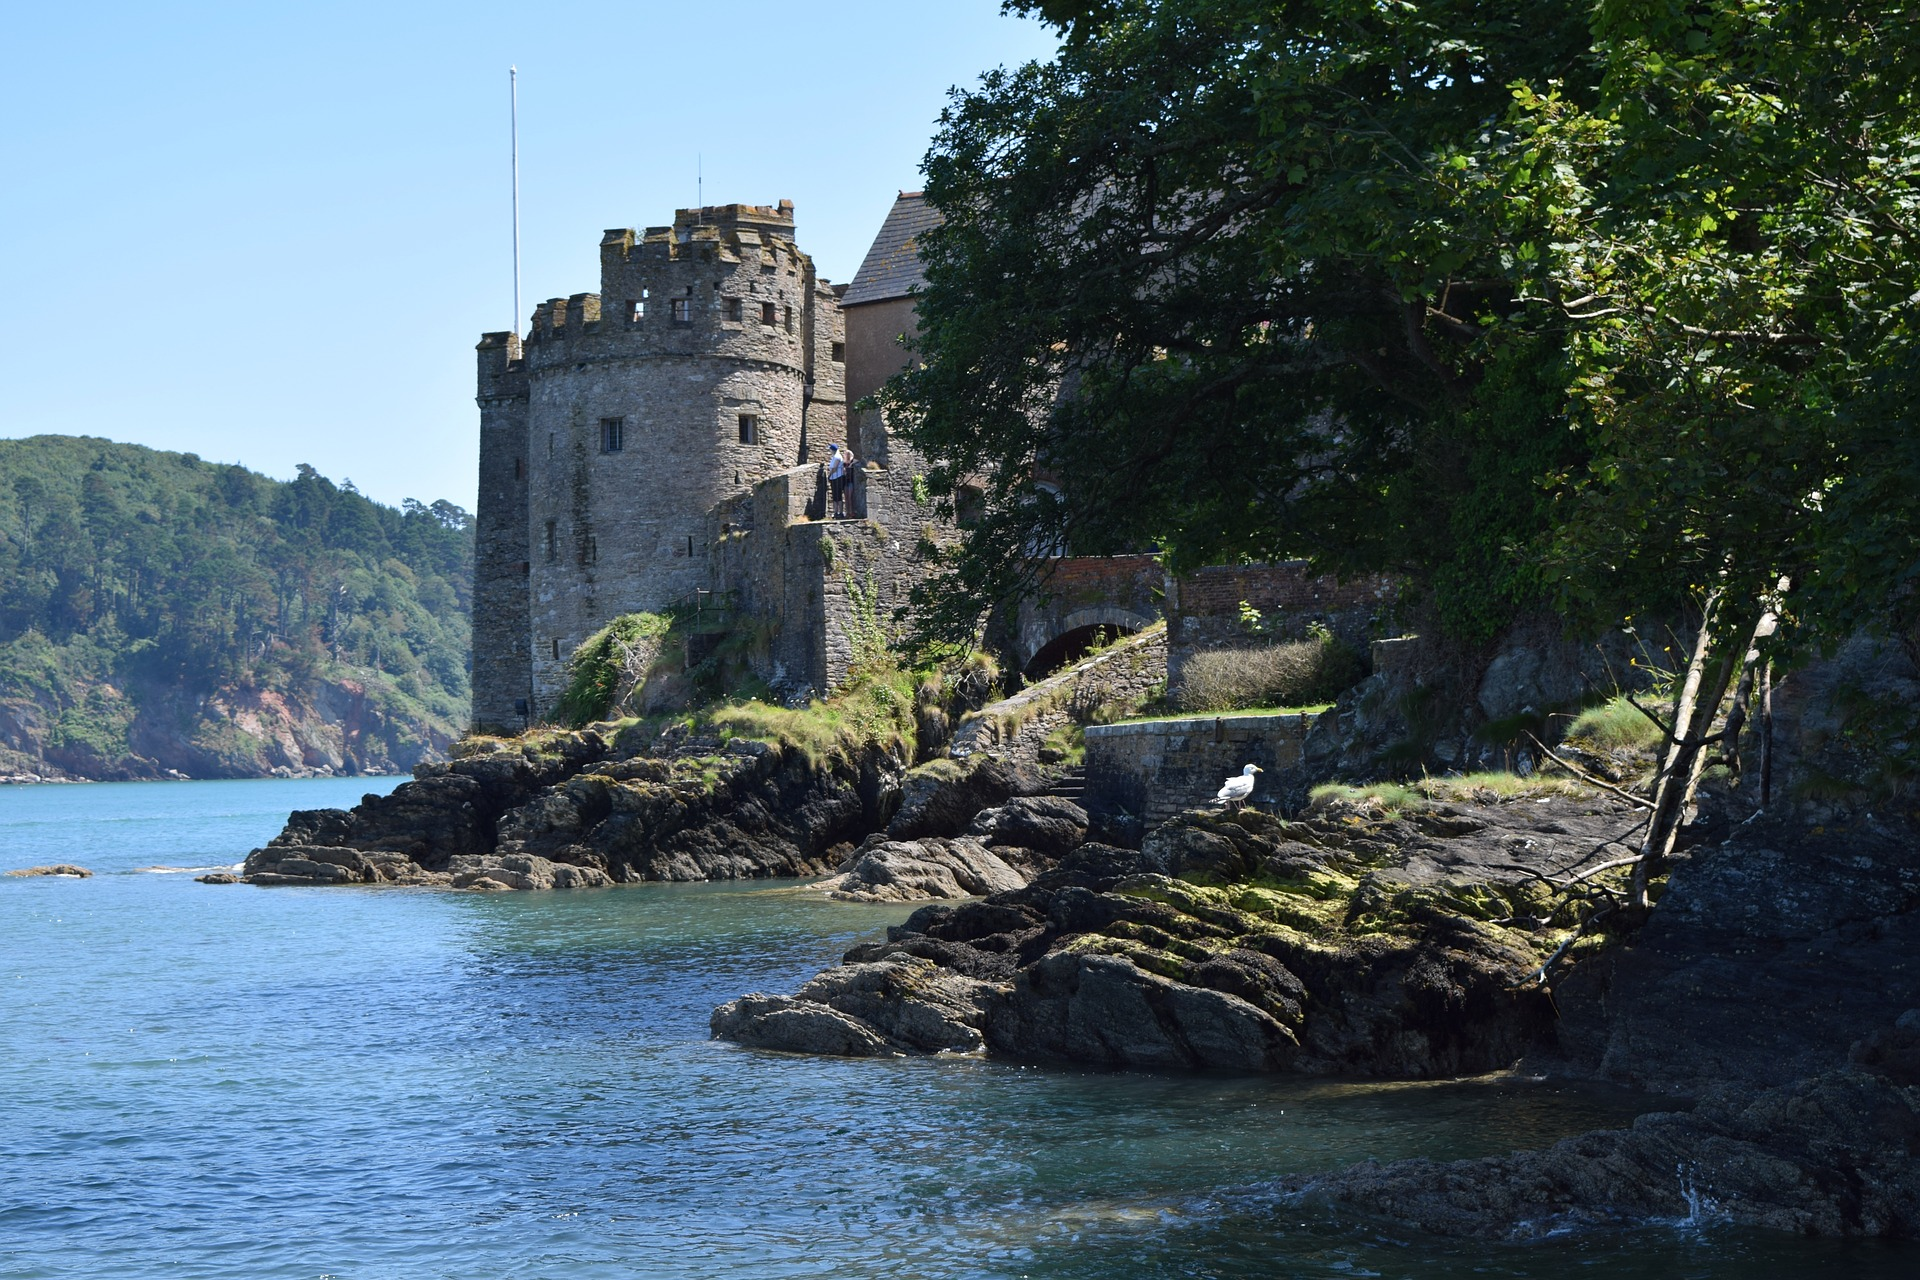 dartmouth-castle-716296_1920.jpg